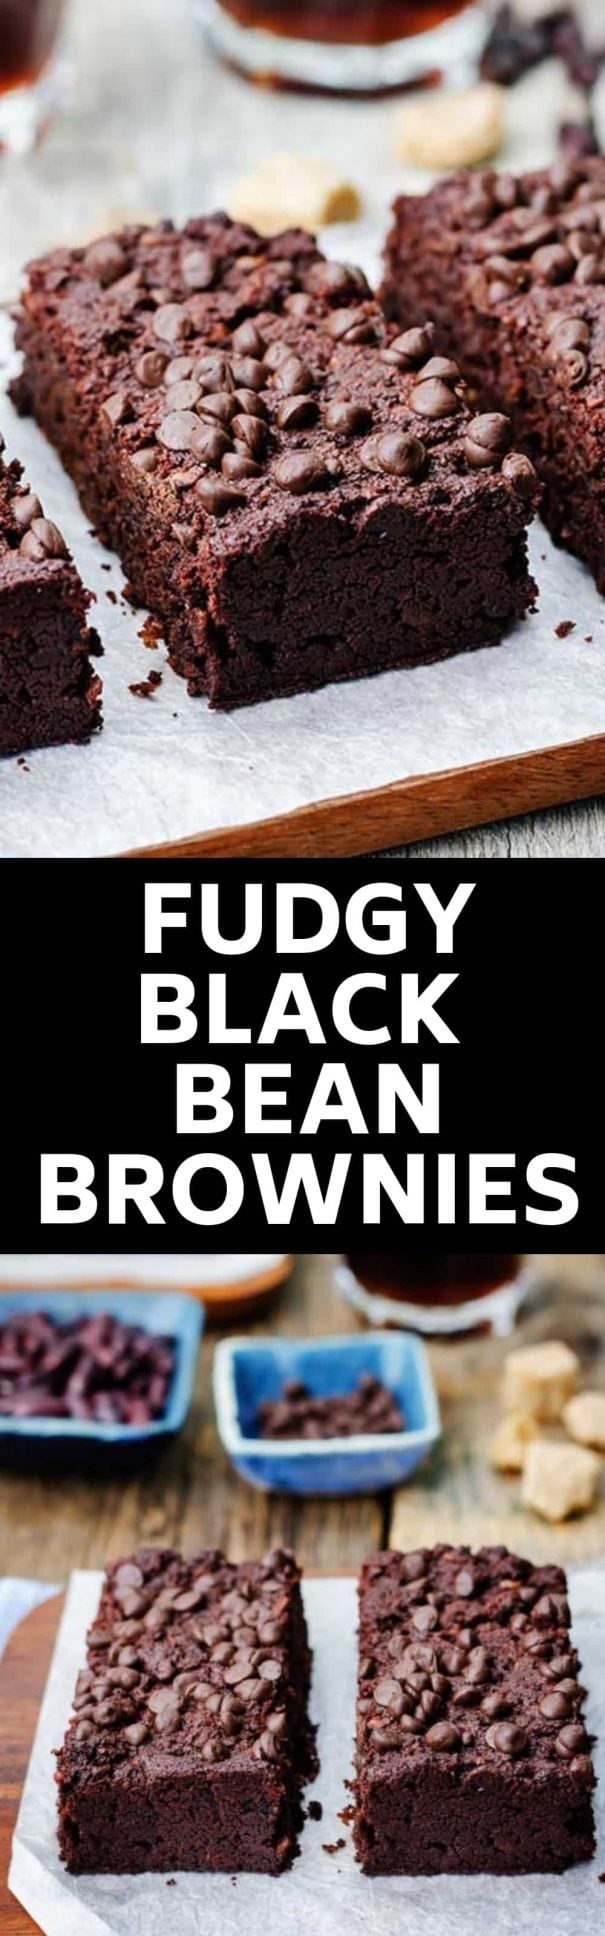 The BEST Black Bean Brownies recipe - healthy, vegan, gluten free and really easy to make! These moist brownies are made with canned black beans and peanut butter making them extra fudgy. I love how simple they are to make and how much kids and adults both love them!